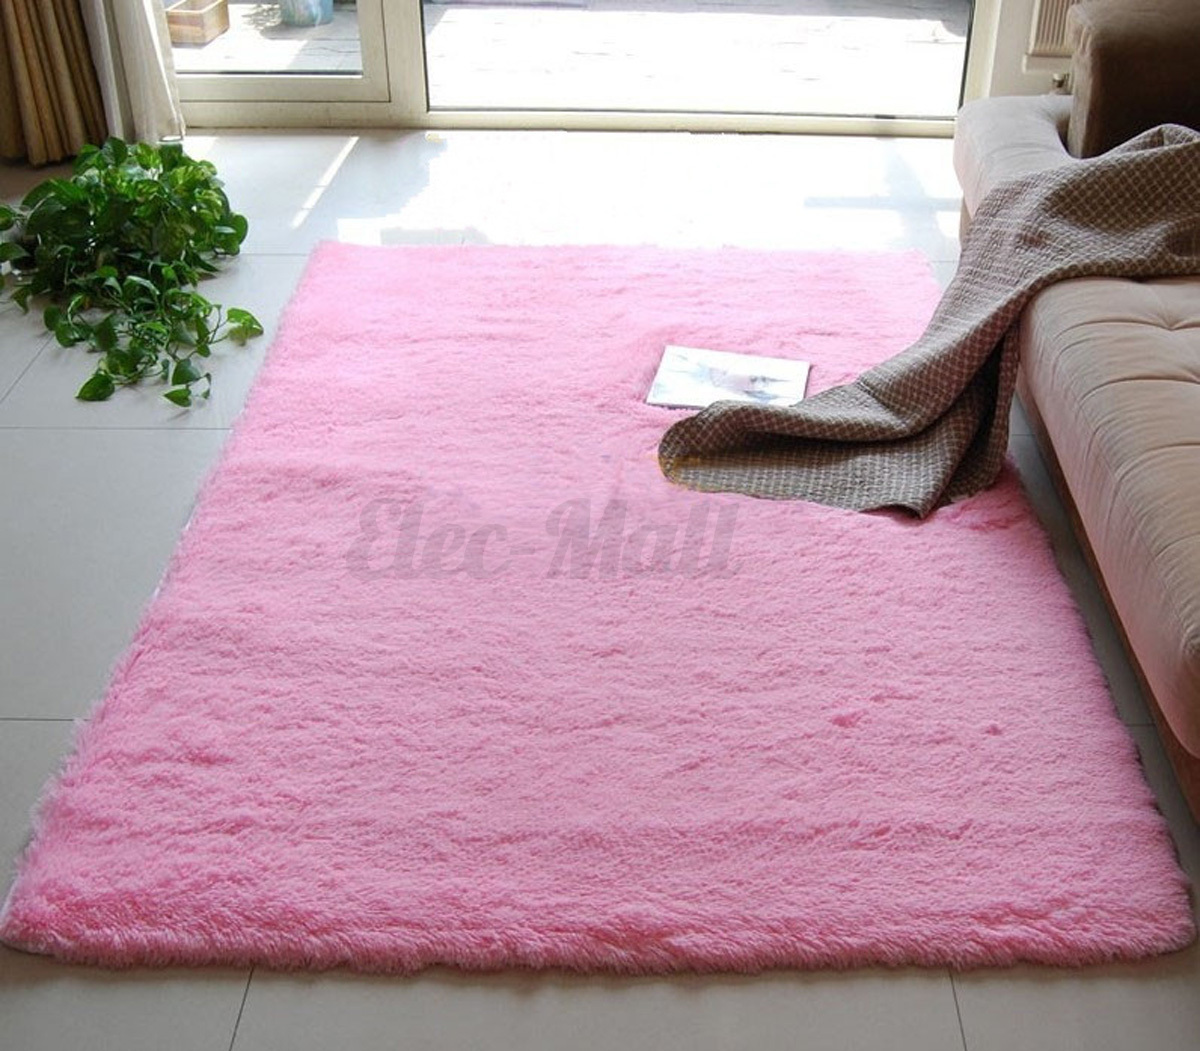 how to clean a fluffy rug at home